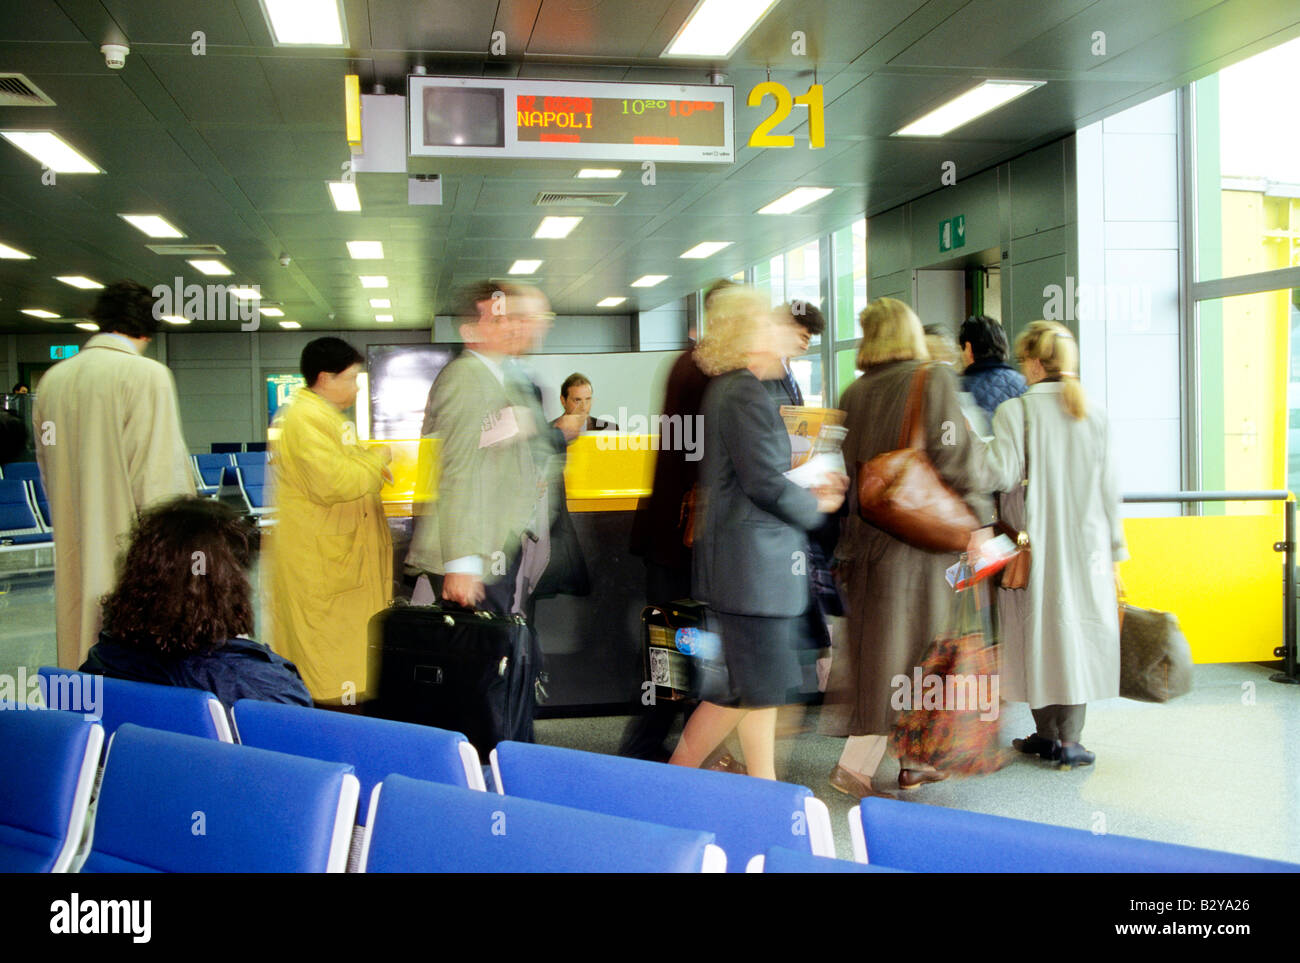 italy, milan, linate airport - Stock Image